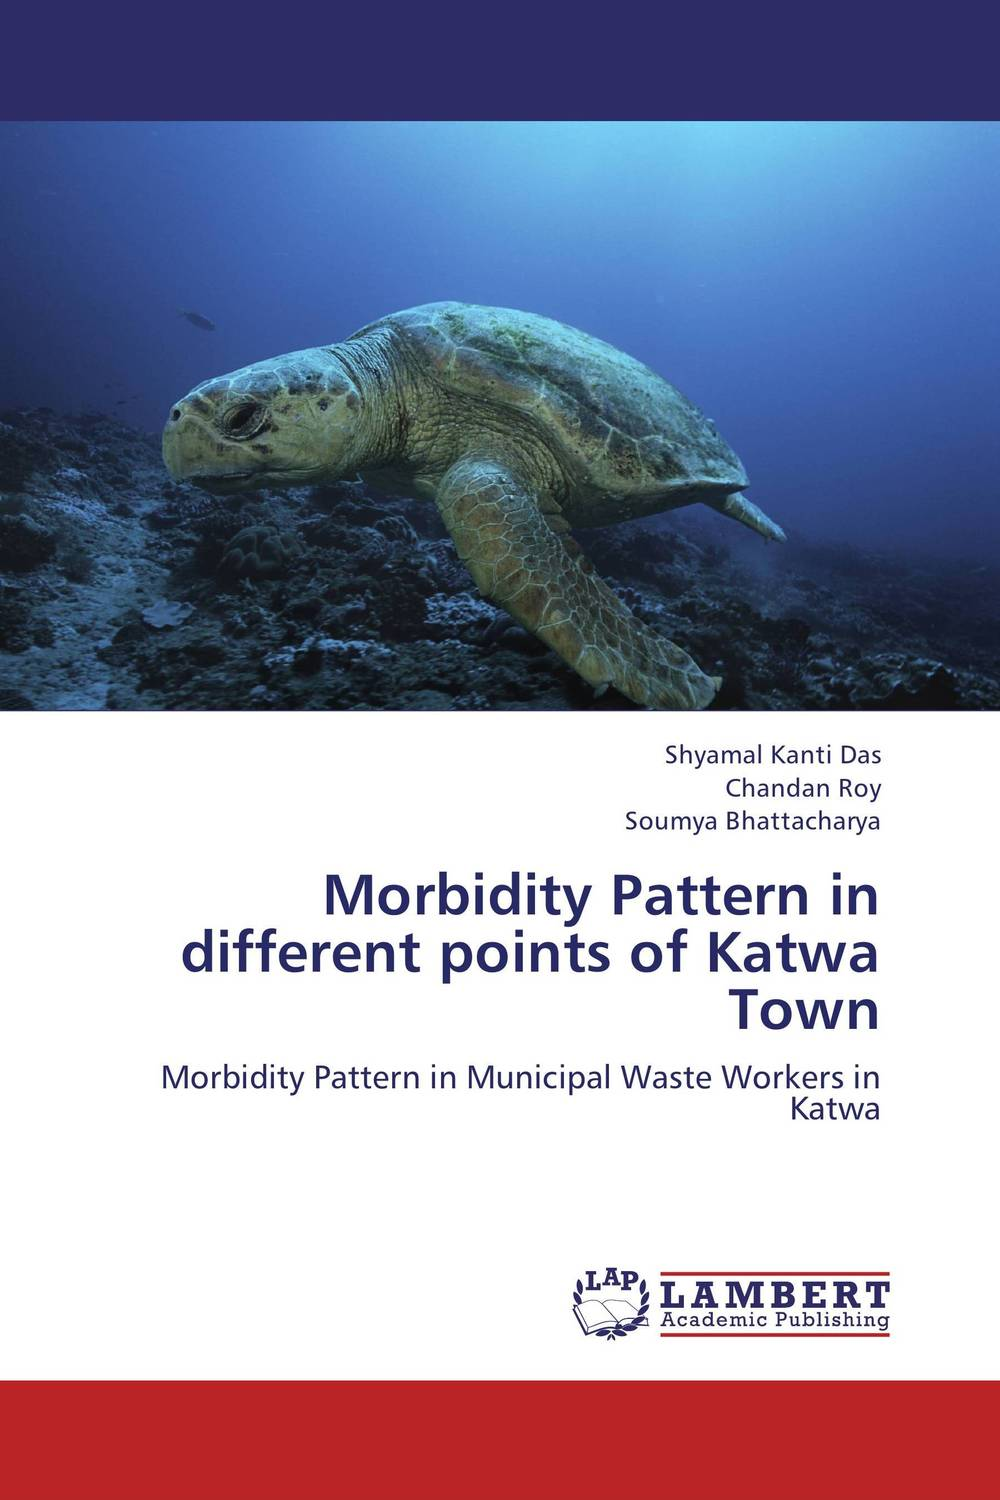 Morbidity Pattern in different points of Katwa Town biodegradation of coffee pulp waste by white rotters